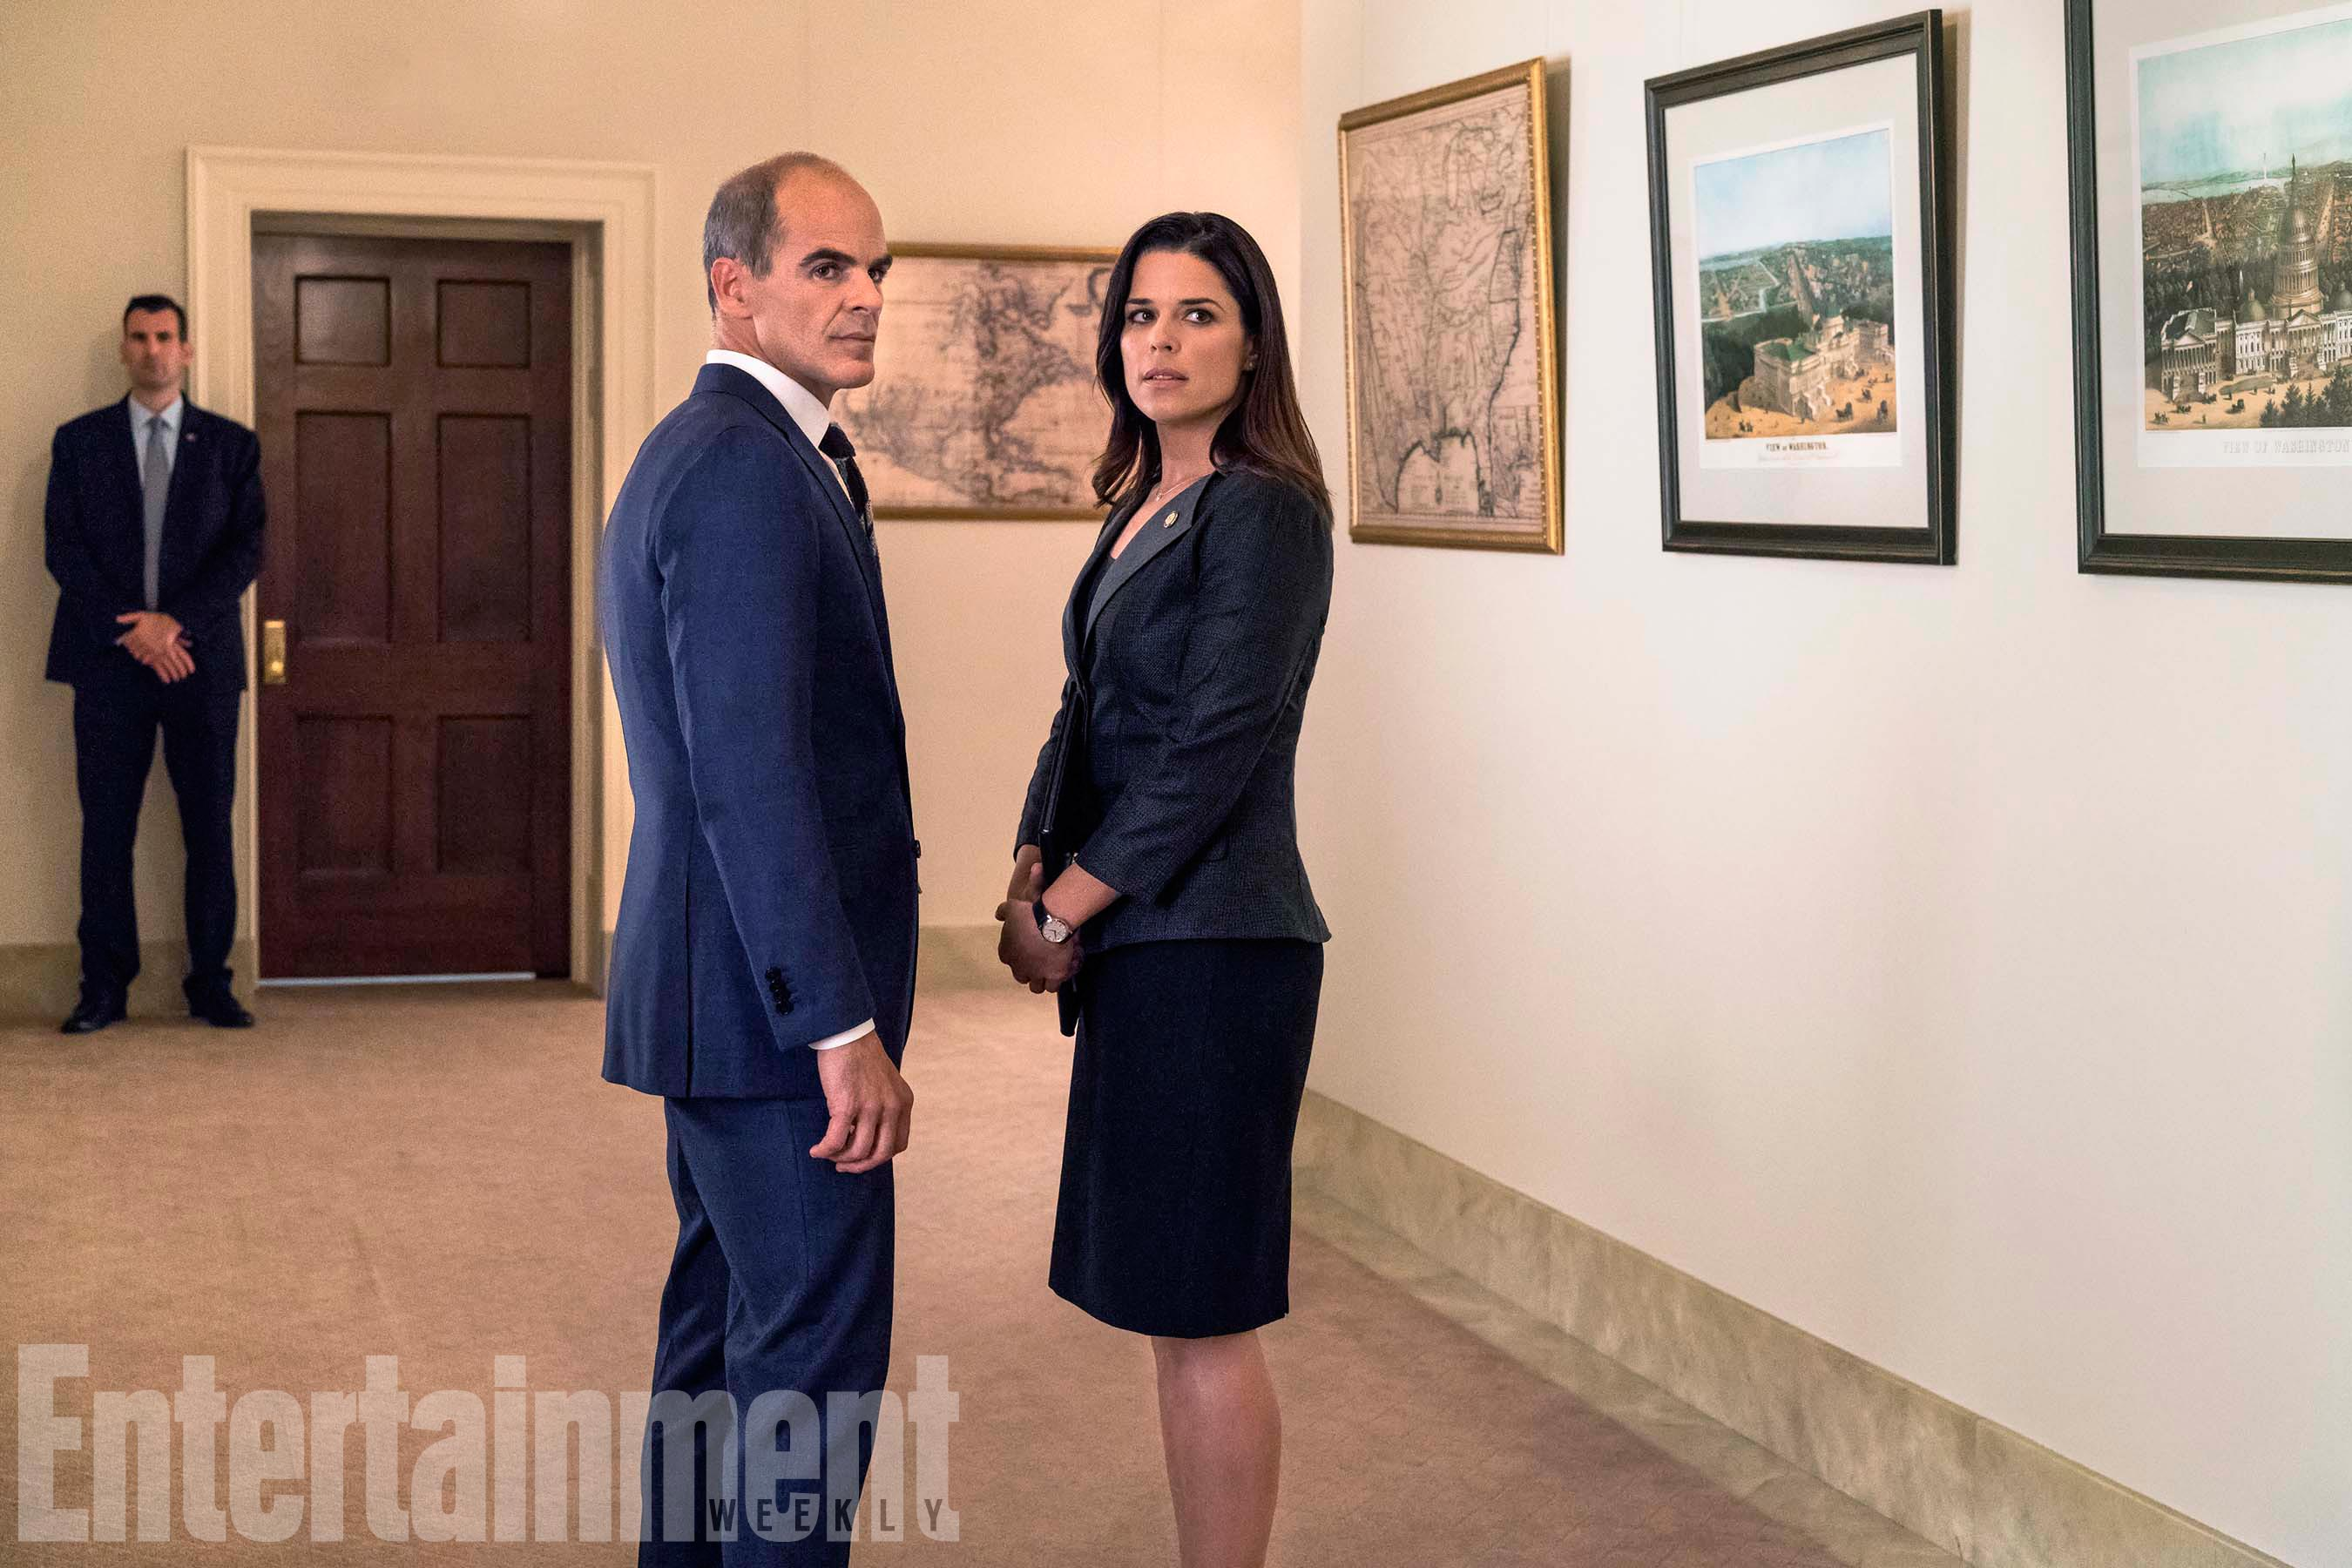 House Of Cards Season 5Pictured from left: Michael Kelly as Doug Stamper, Neve Campbell as LeAnn Harvey